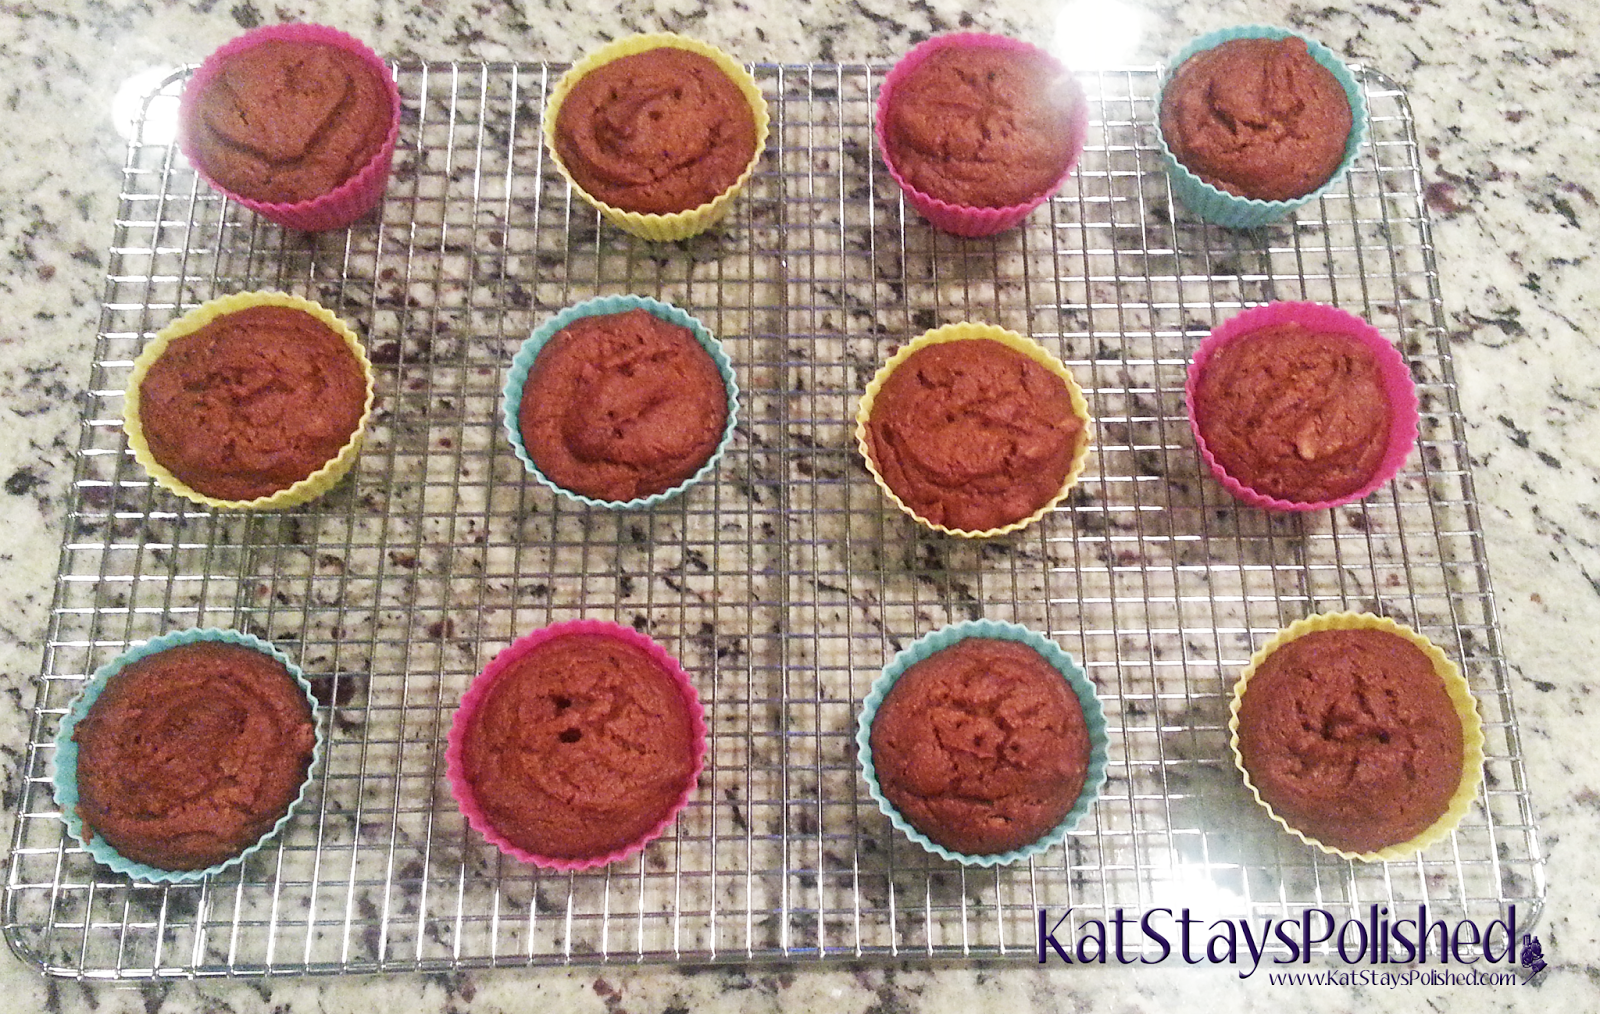 OvenArt Bakeware Silicone Baking Cups | SkinnyTaste Pumpkin Nut Muffins | Kat Stays Polished